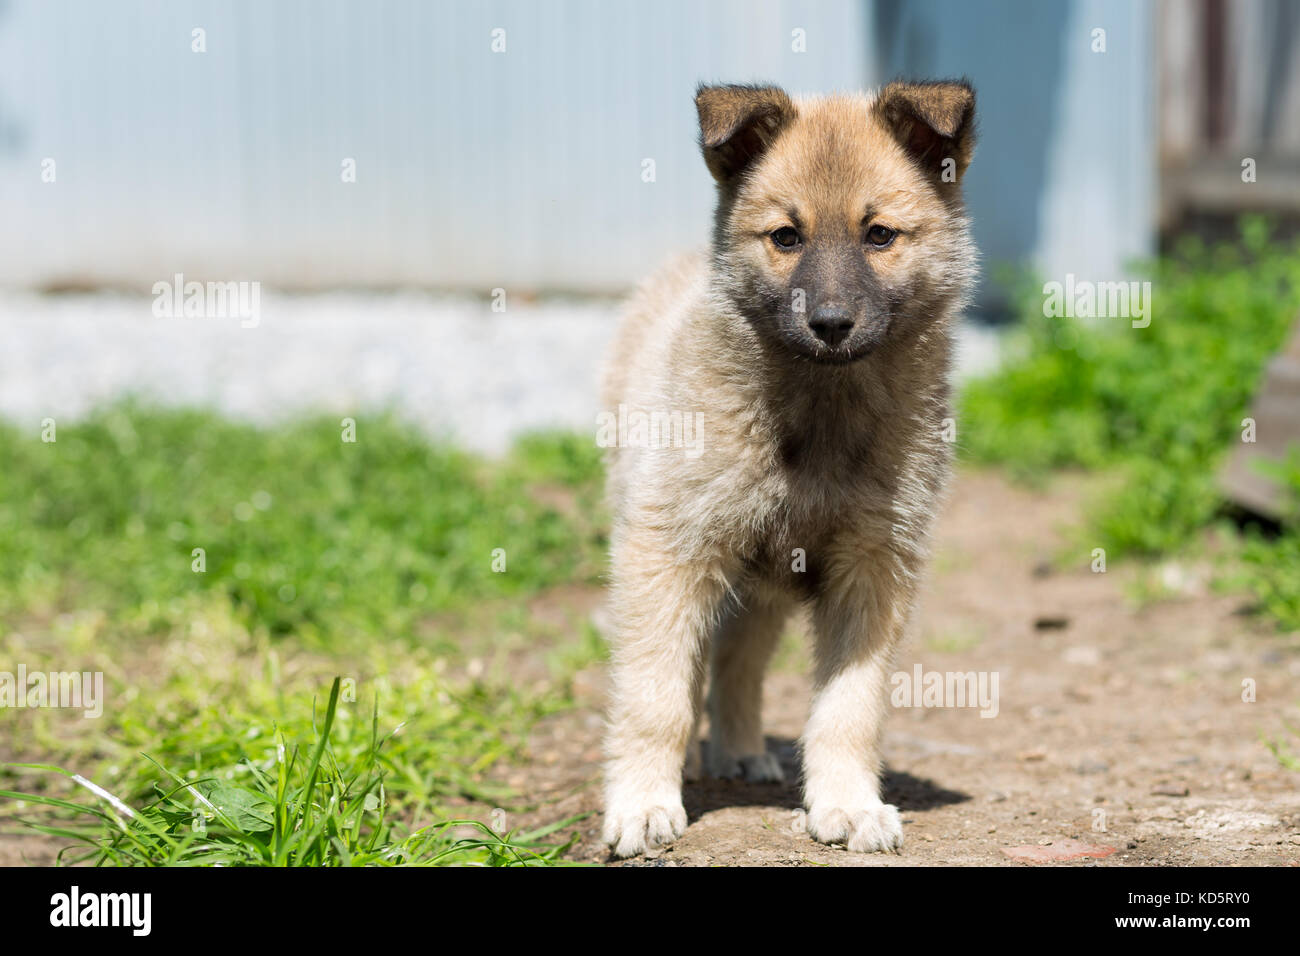 non-pedigree pale-colored puppy stands on a path - Stock Image